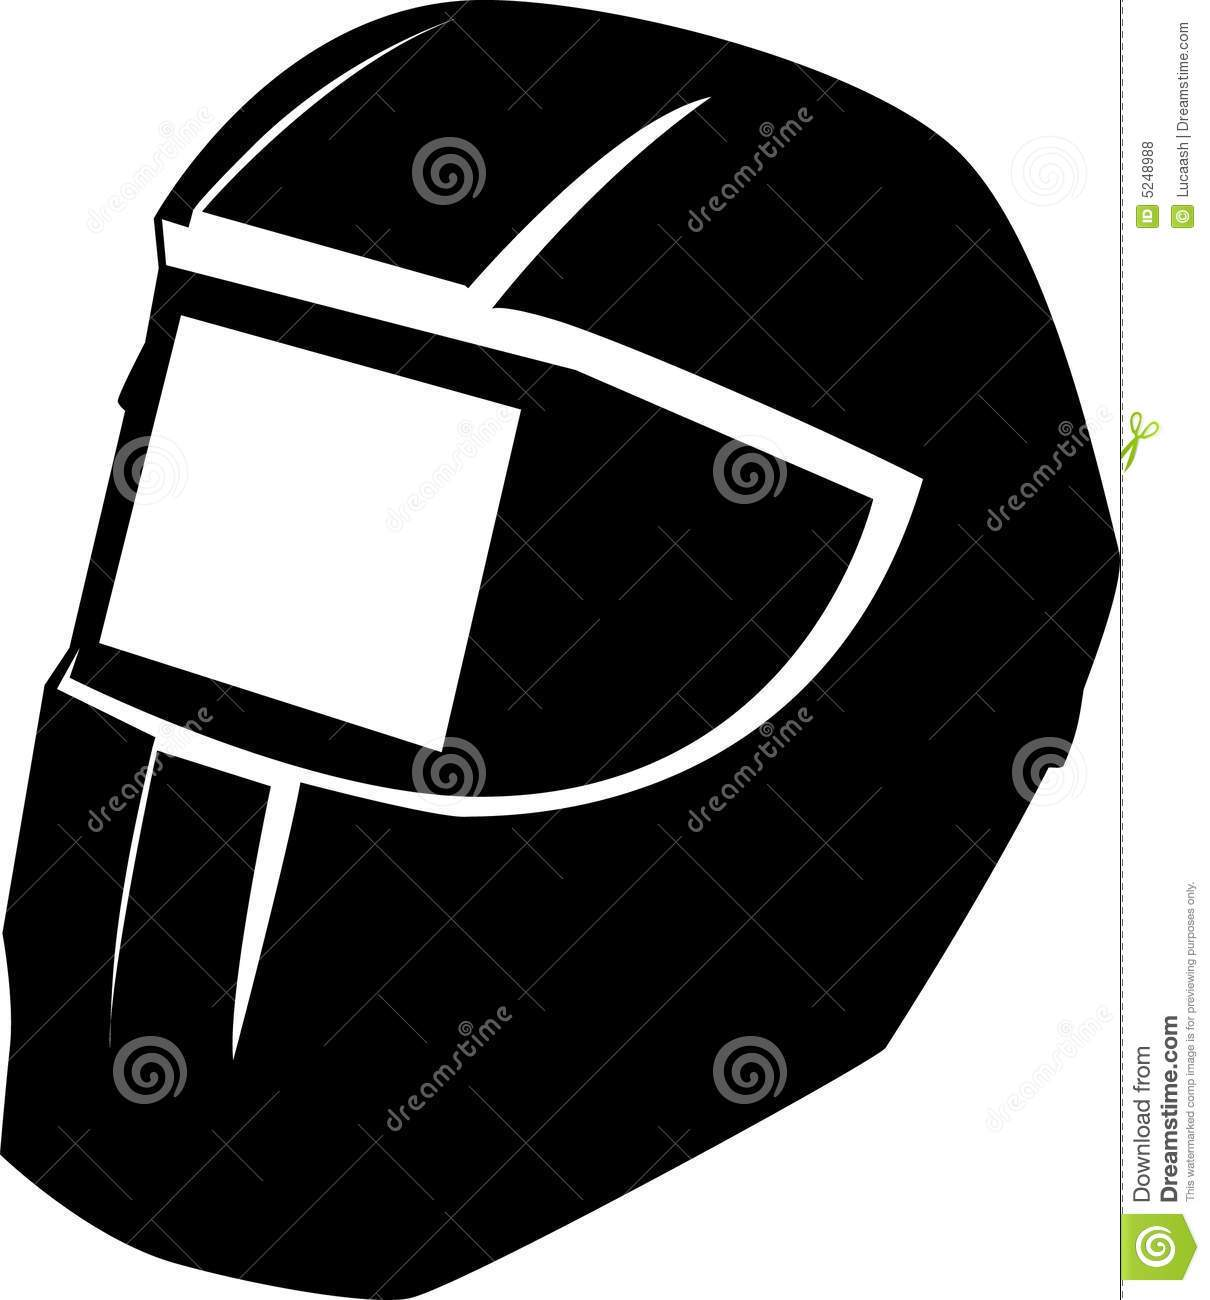 Weld helmet clipart image library library Welding helmet clipart 2 » Clipart Portal image library library